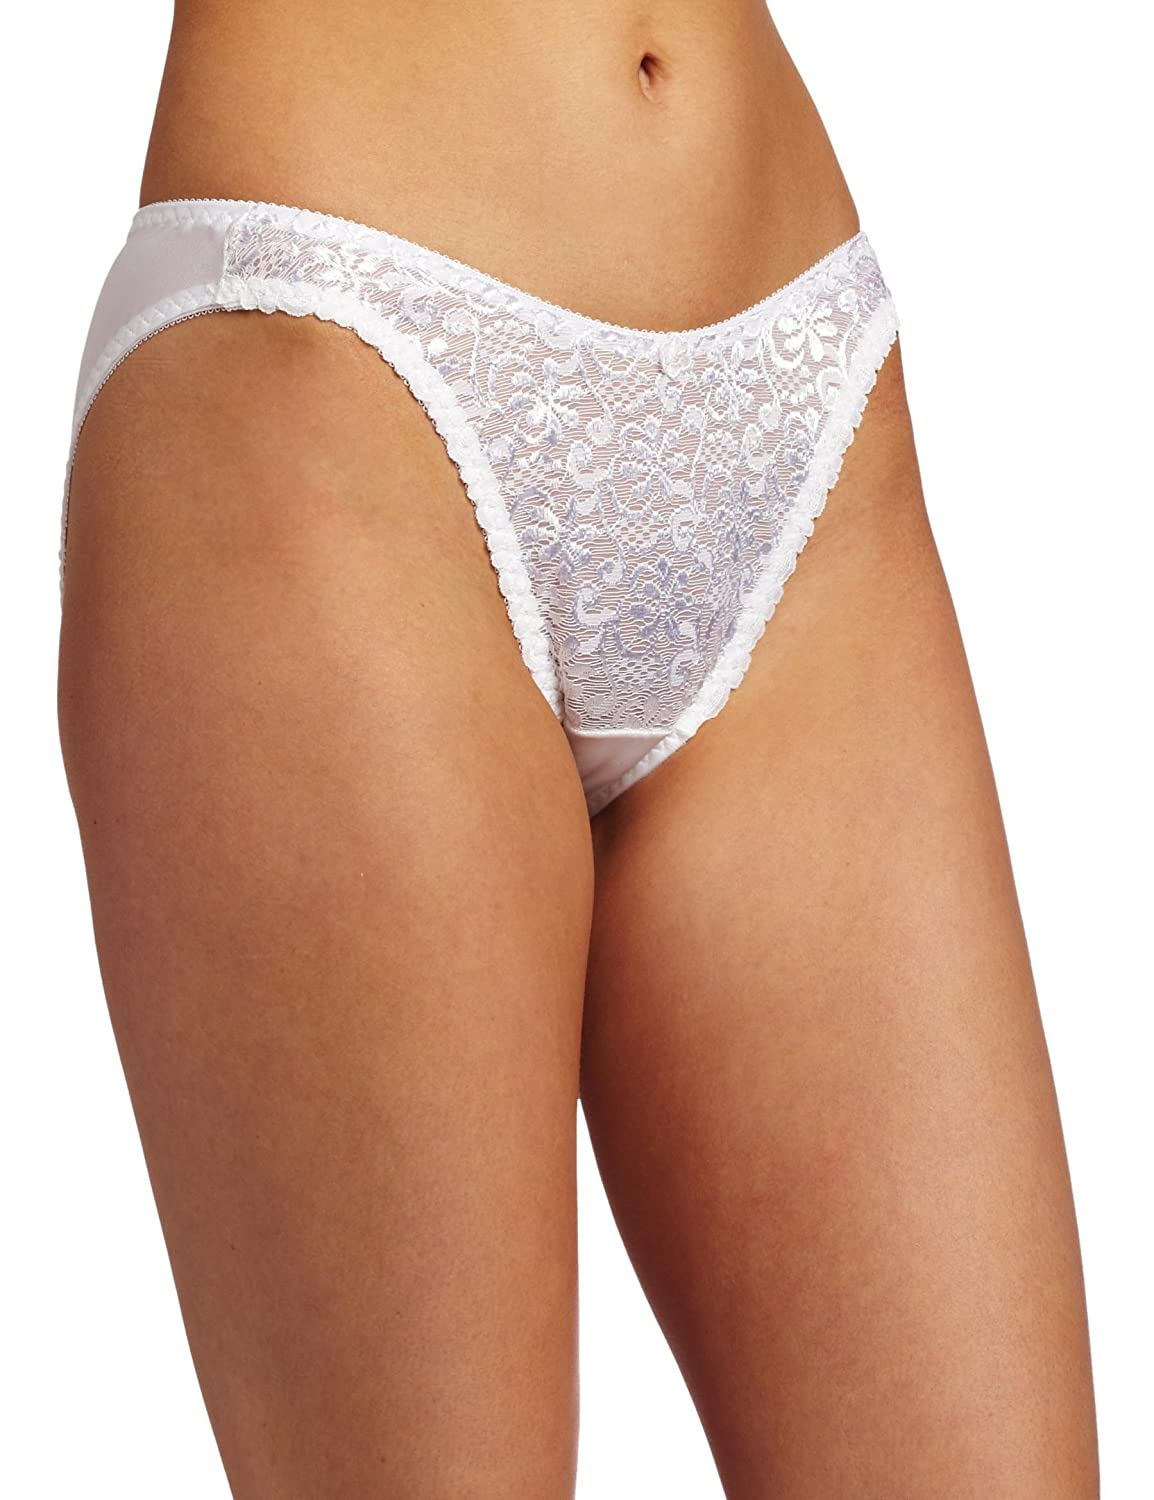 Carnival Womens French Cut Tuxedo Bikini Panty National Mill Industry Inc- Carnival 4137